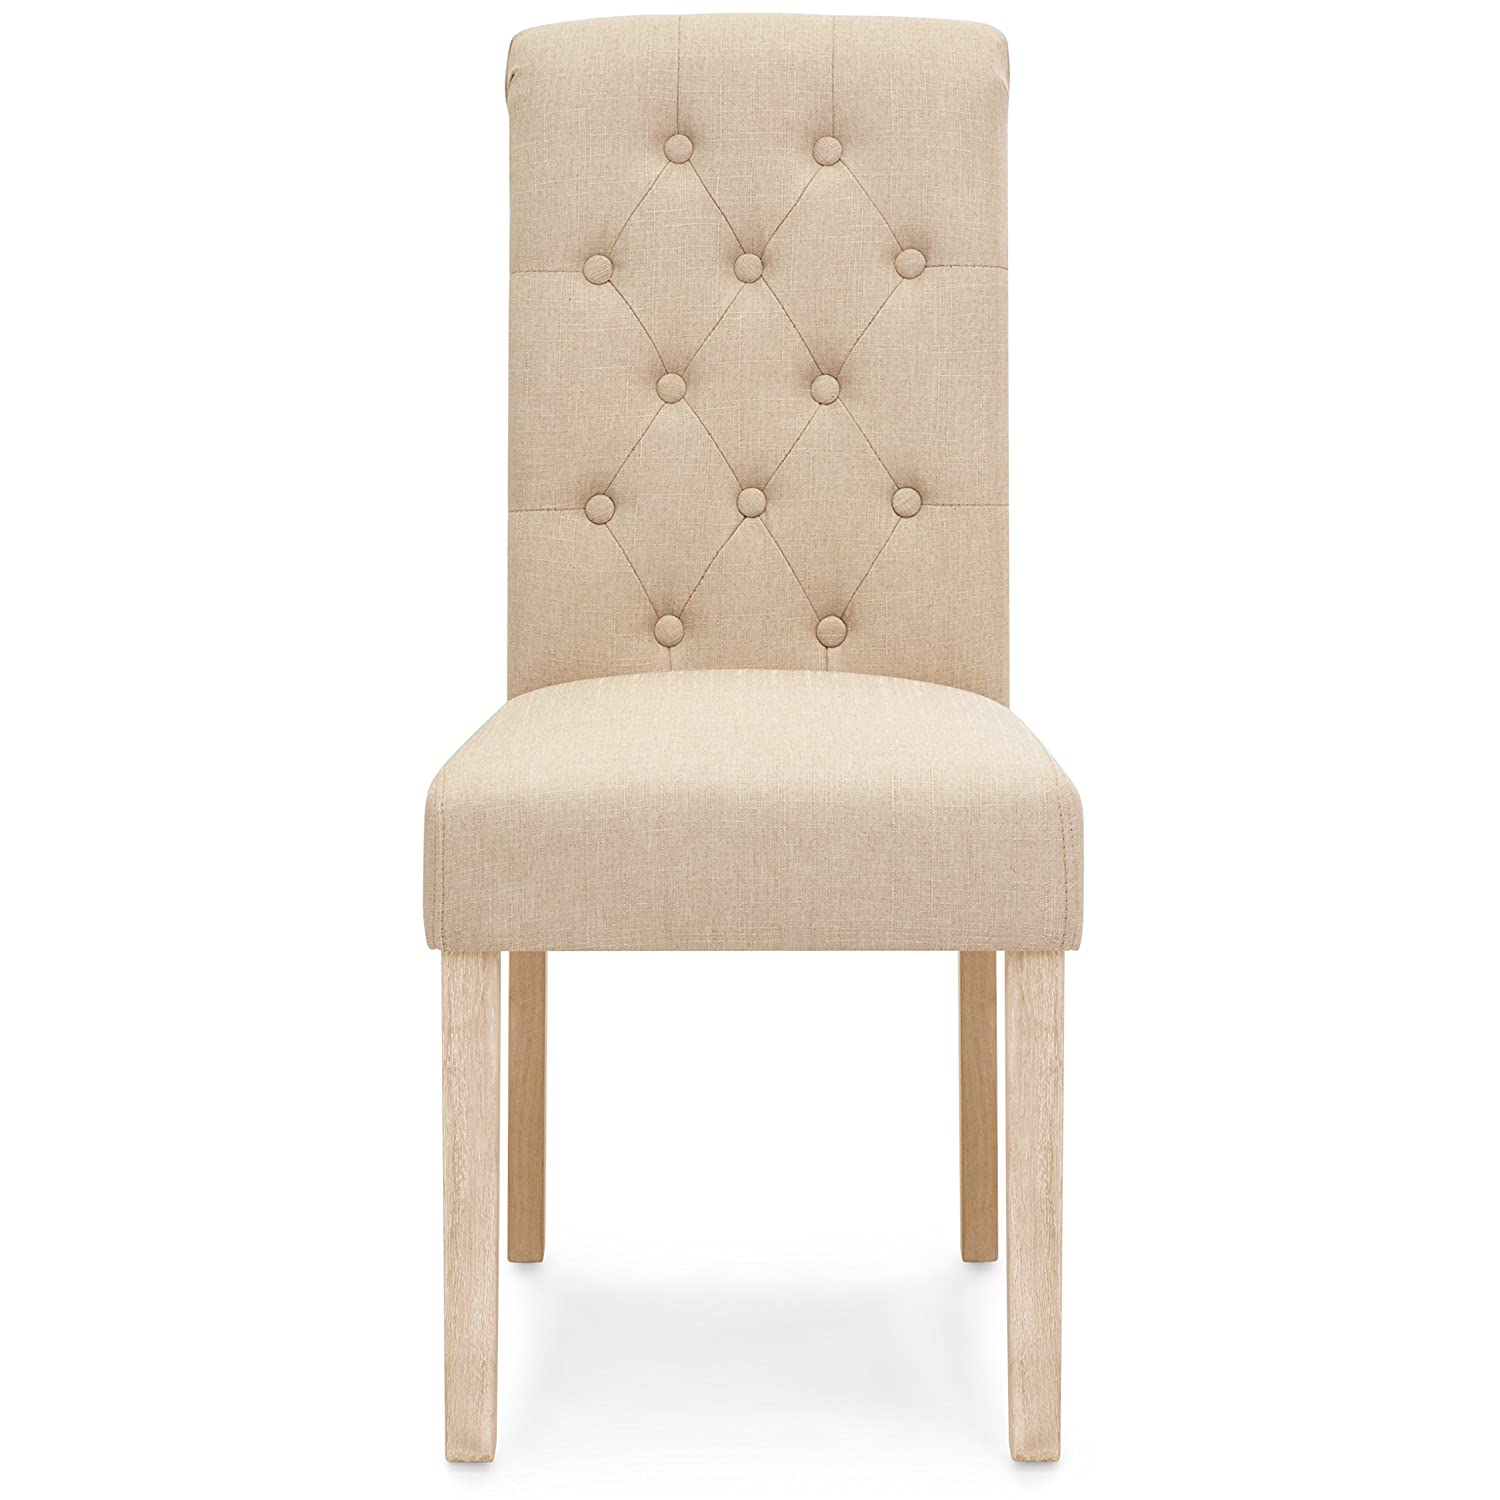 Best Choice Products Set of 2 Tufted High Back Parsons Dining Chairs Tan